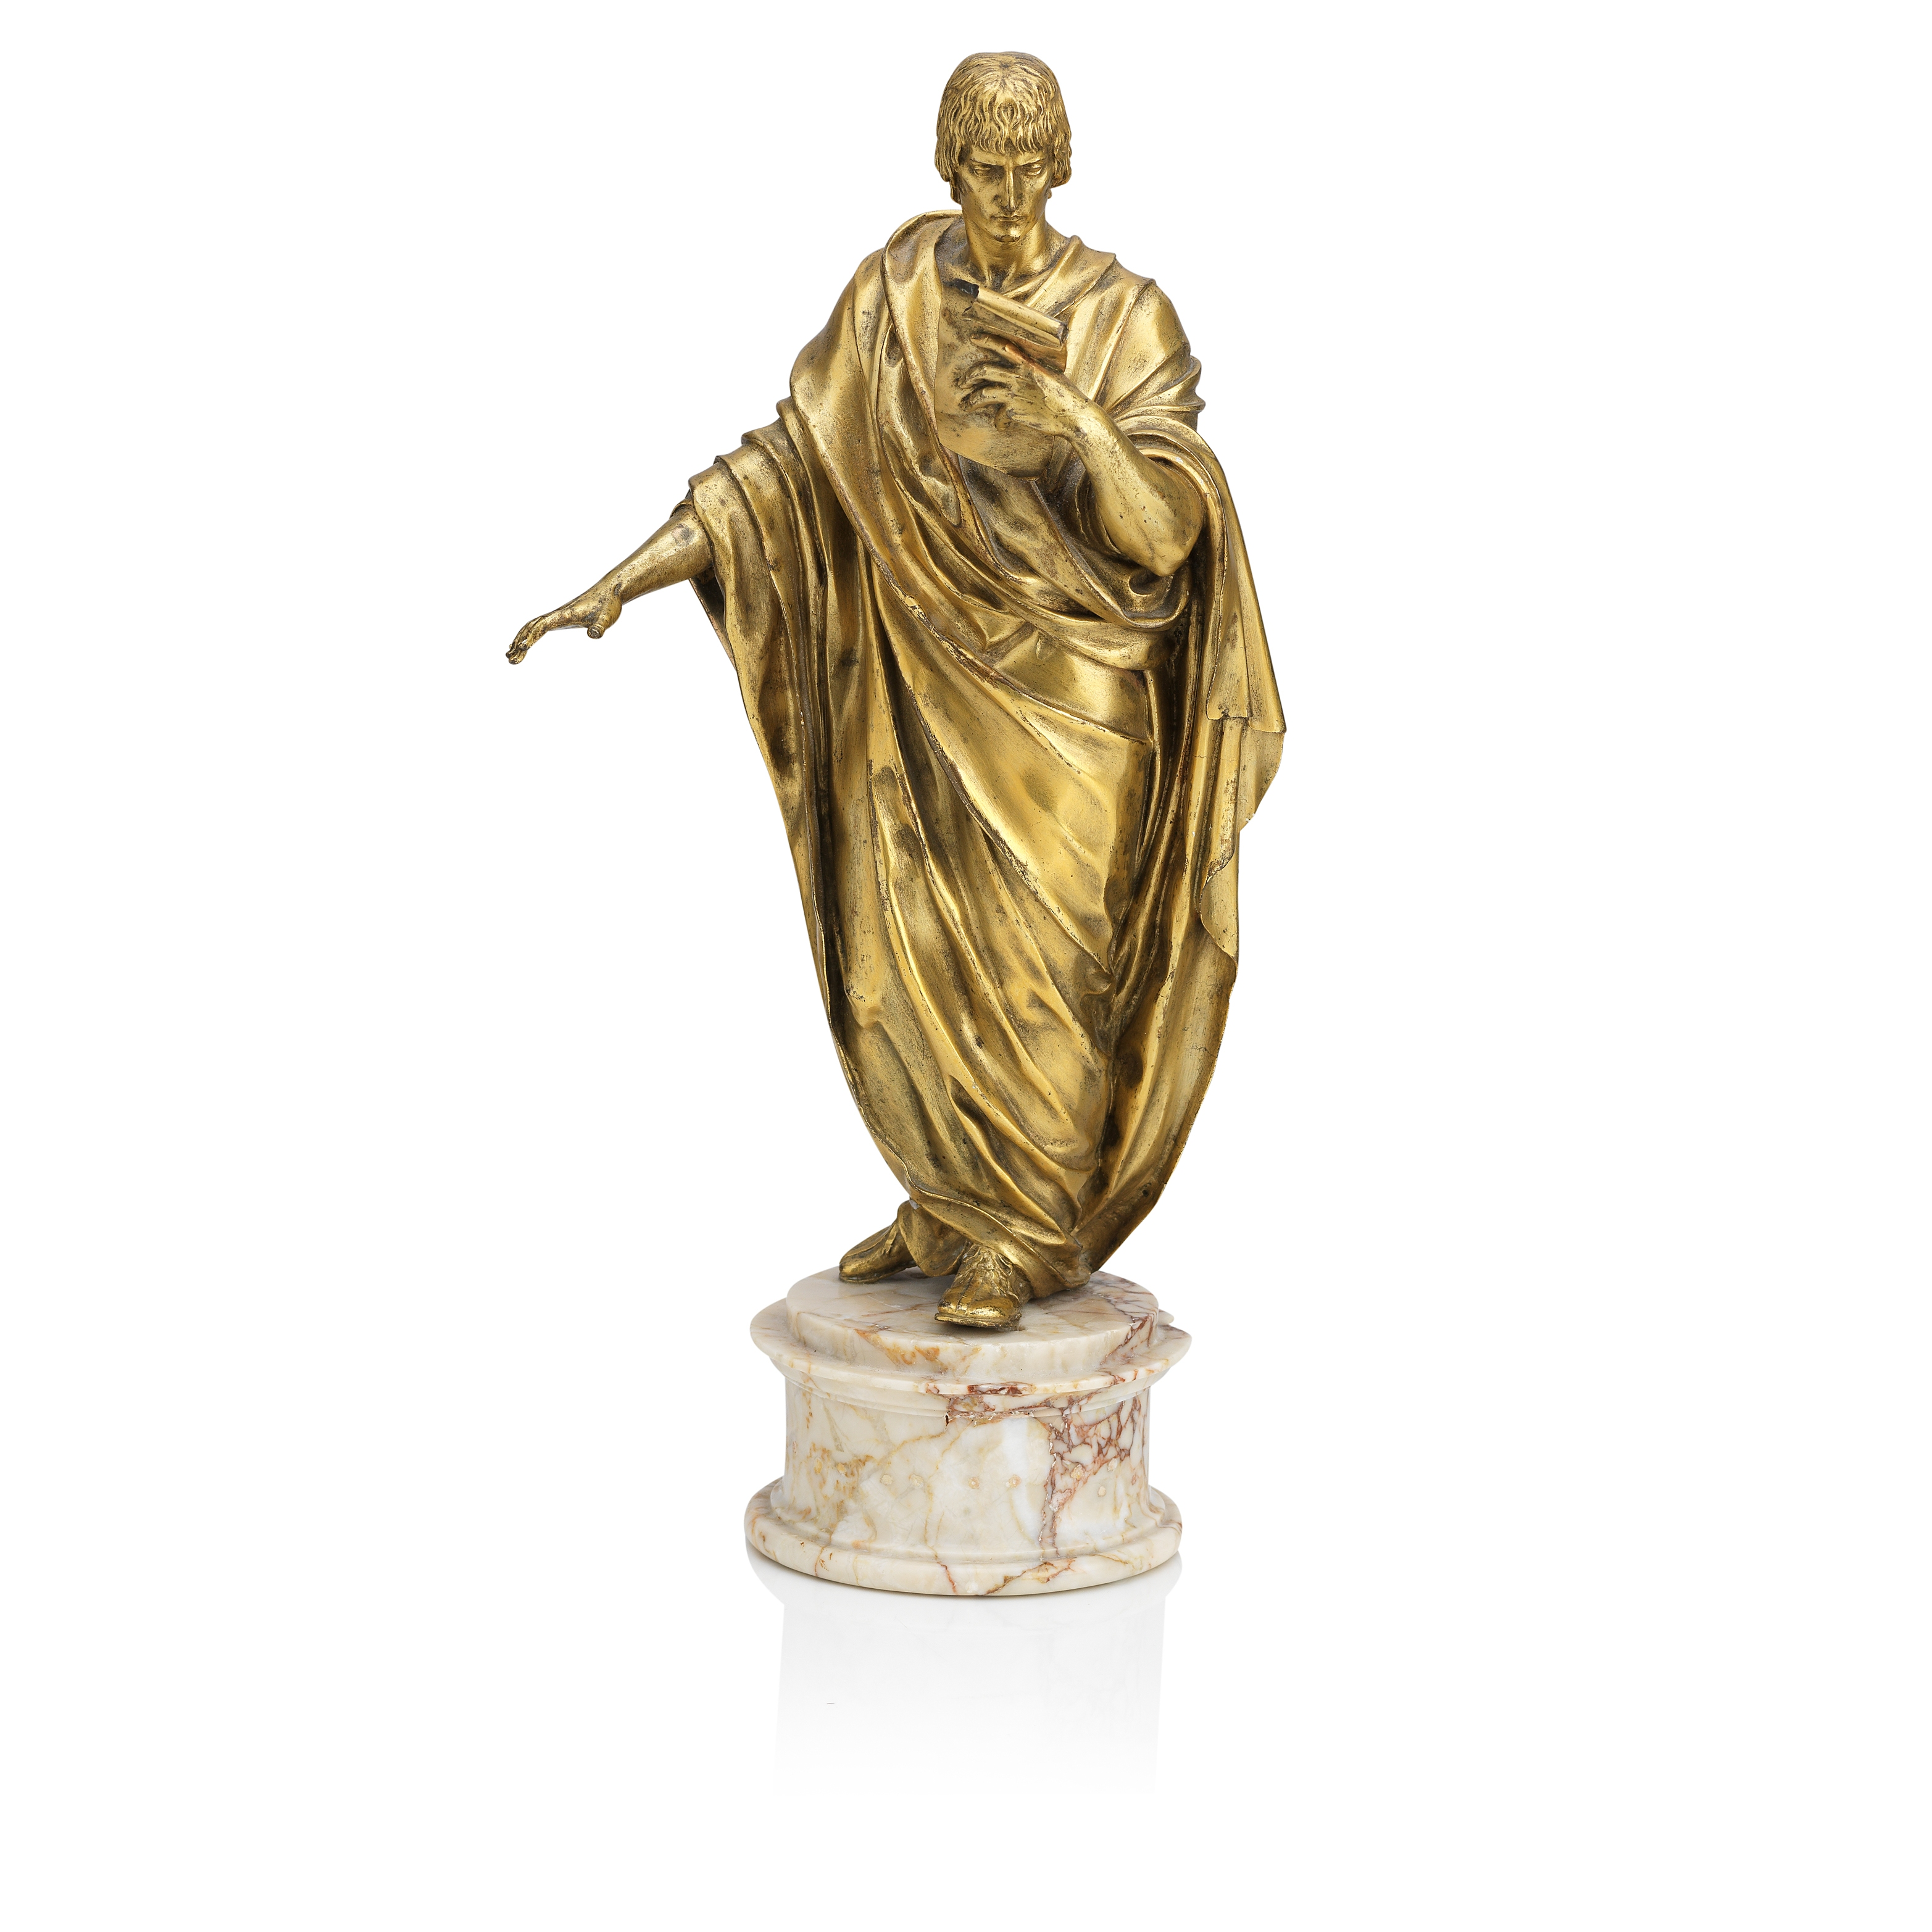 Lot 15 - Angelo Pizzi (Italian, 1775-1819): A gilt bronze figure of a Roman orator